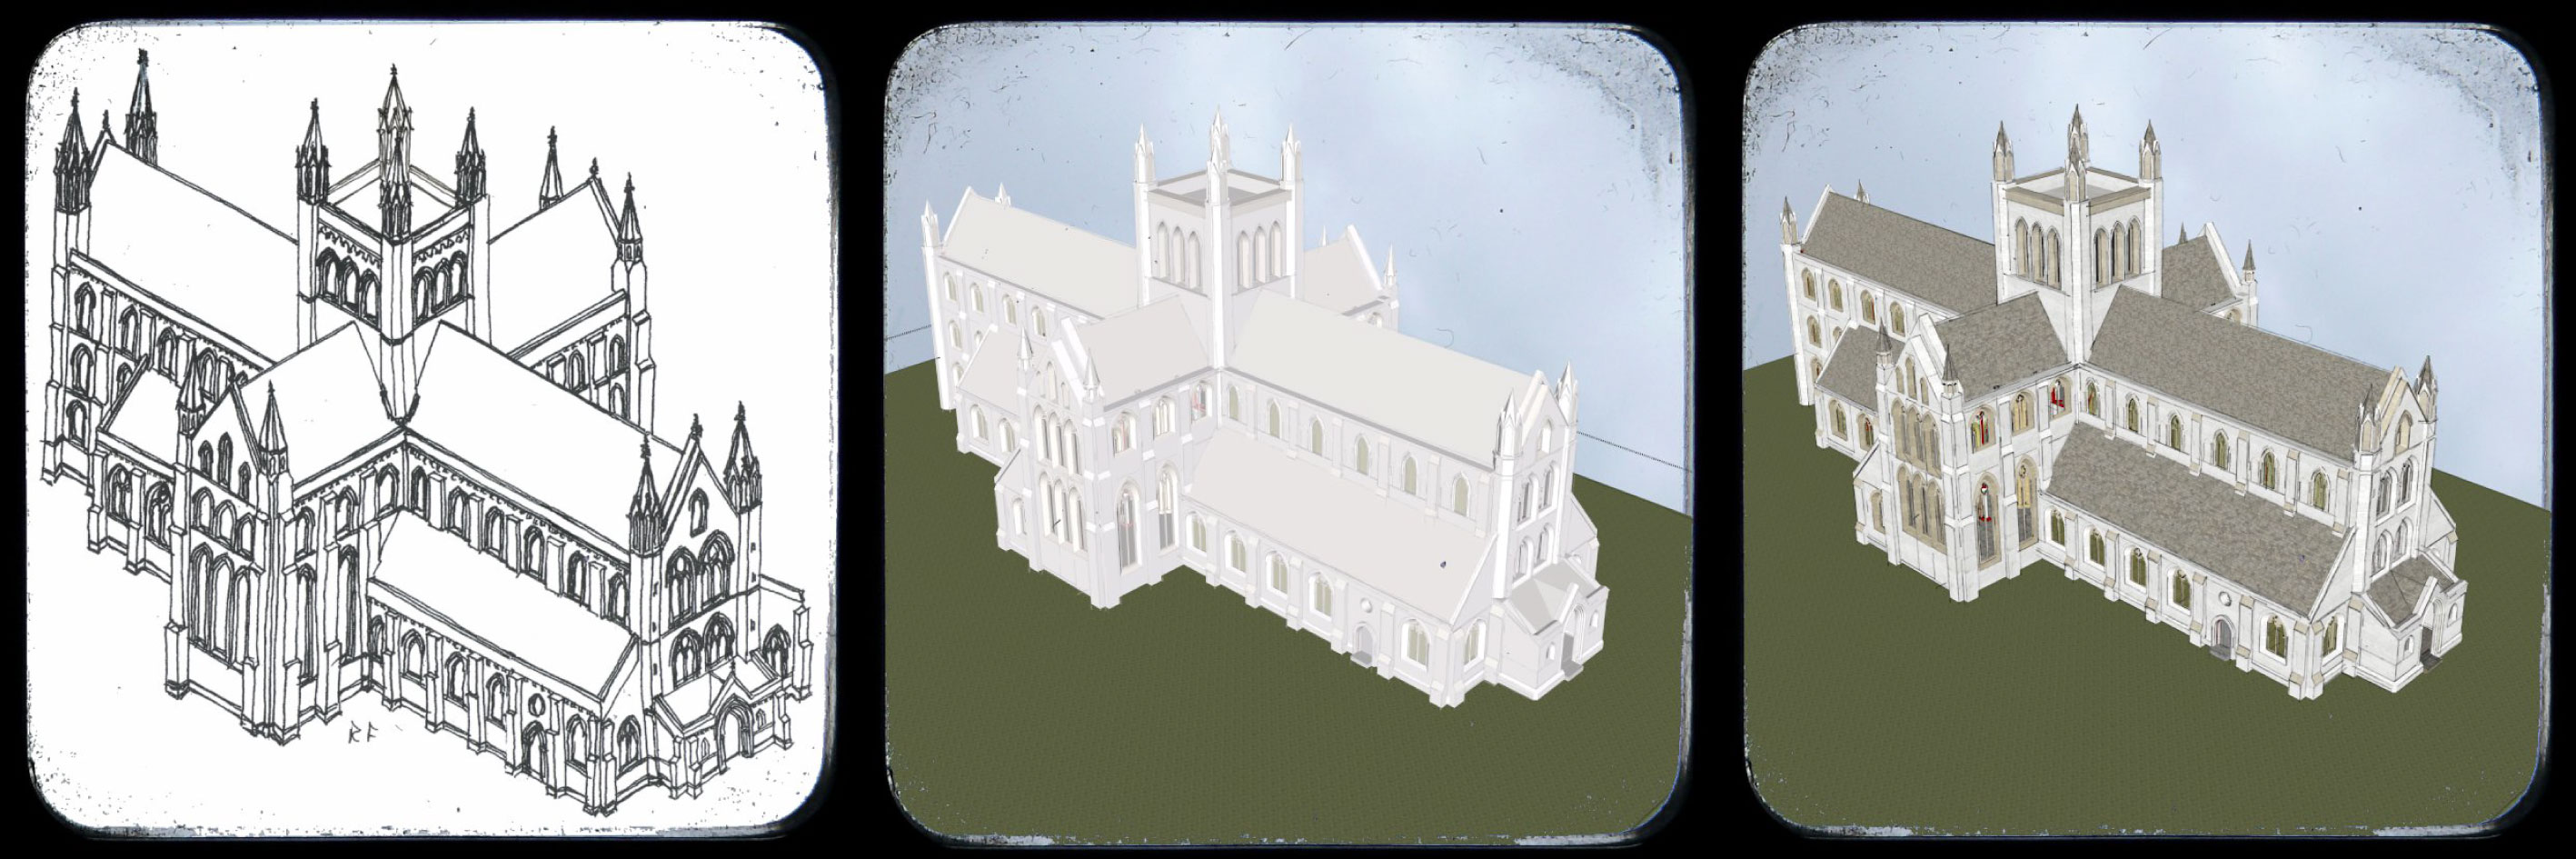 From a sketch by Prof Richard Fawcett to our 3D representation. Using the scale and layout from the archaeological dig, creating a 2D sketch and then a 3D model we gain a better understanding of how the Abbey would have looked.